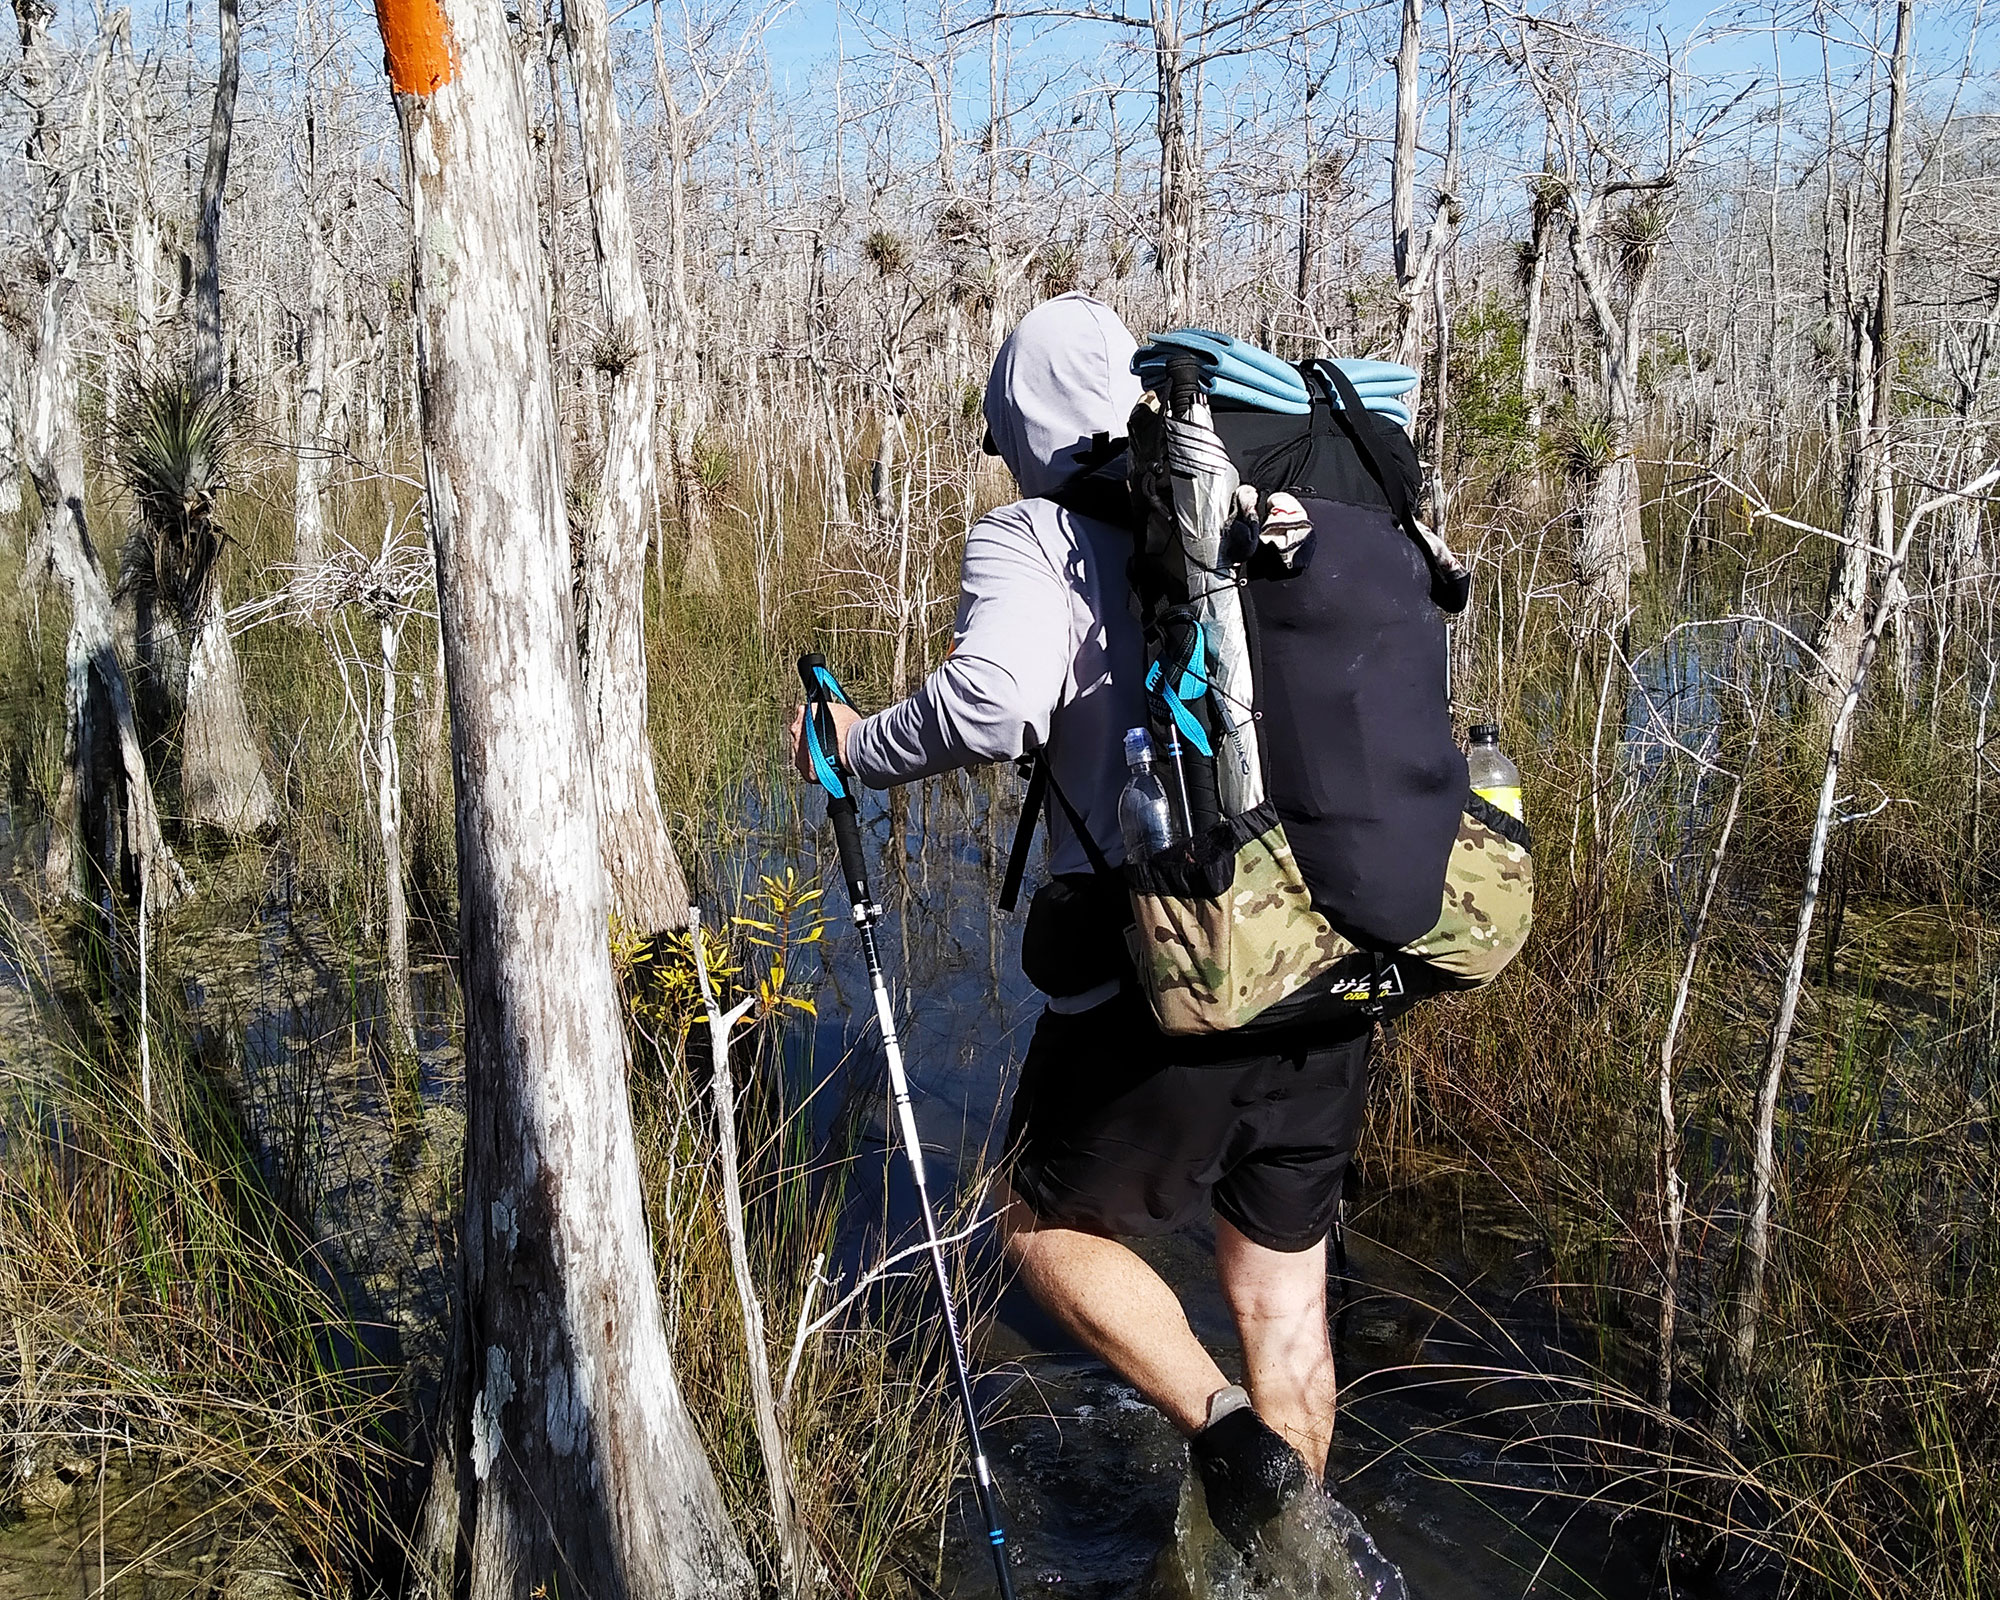 Joe King gets his feet wet on the Florida National Scenic Trail. This 30-mile section of Big Cyprus is located at the southern terminus, and borders the Everglades. | Courtesy: Aaron Landon